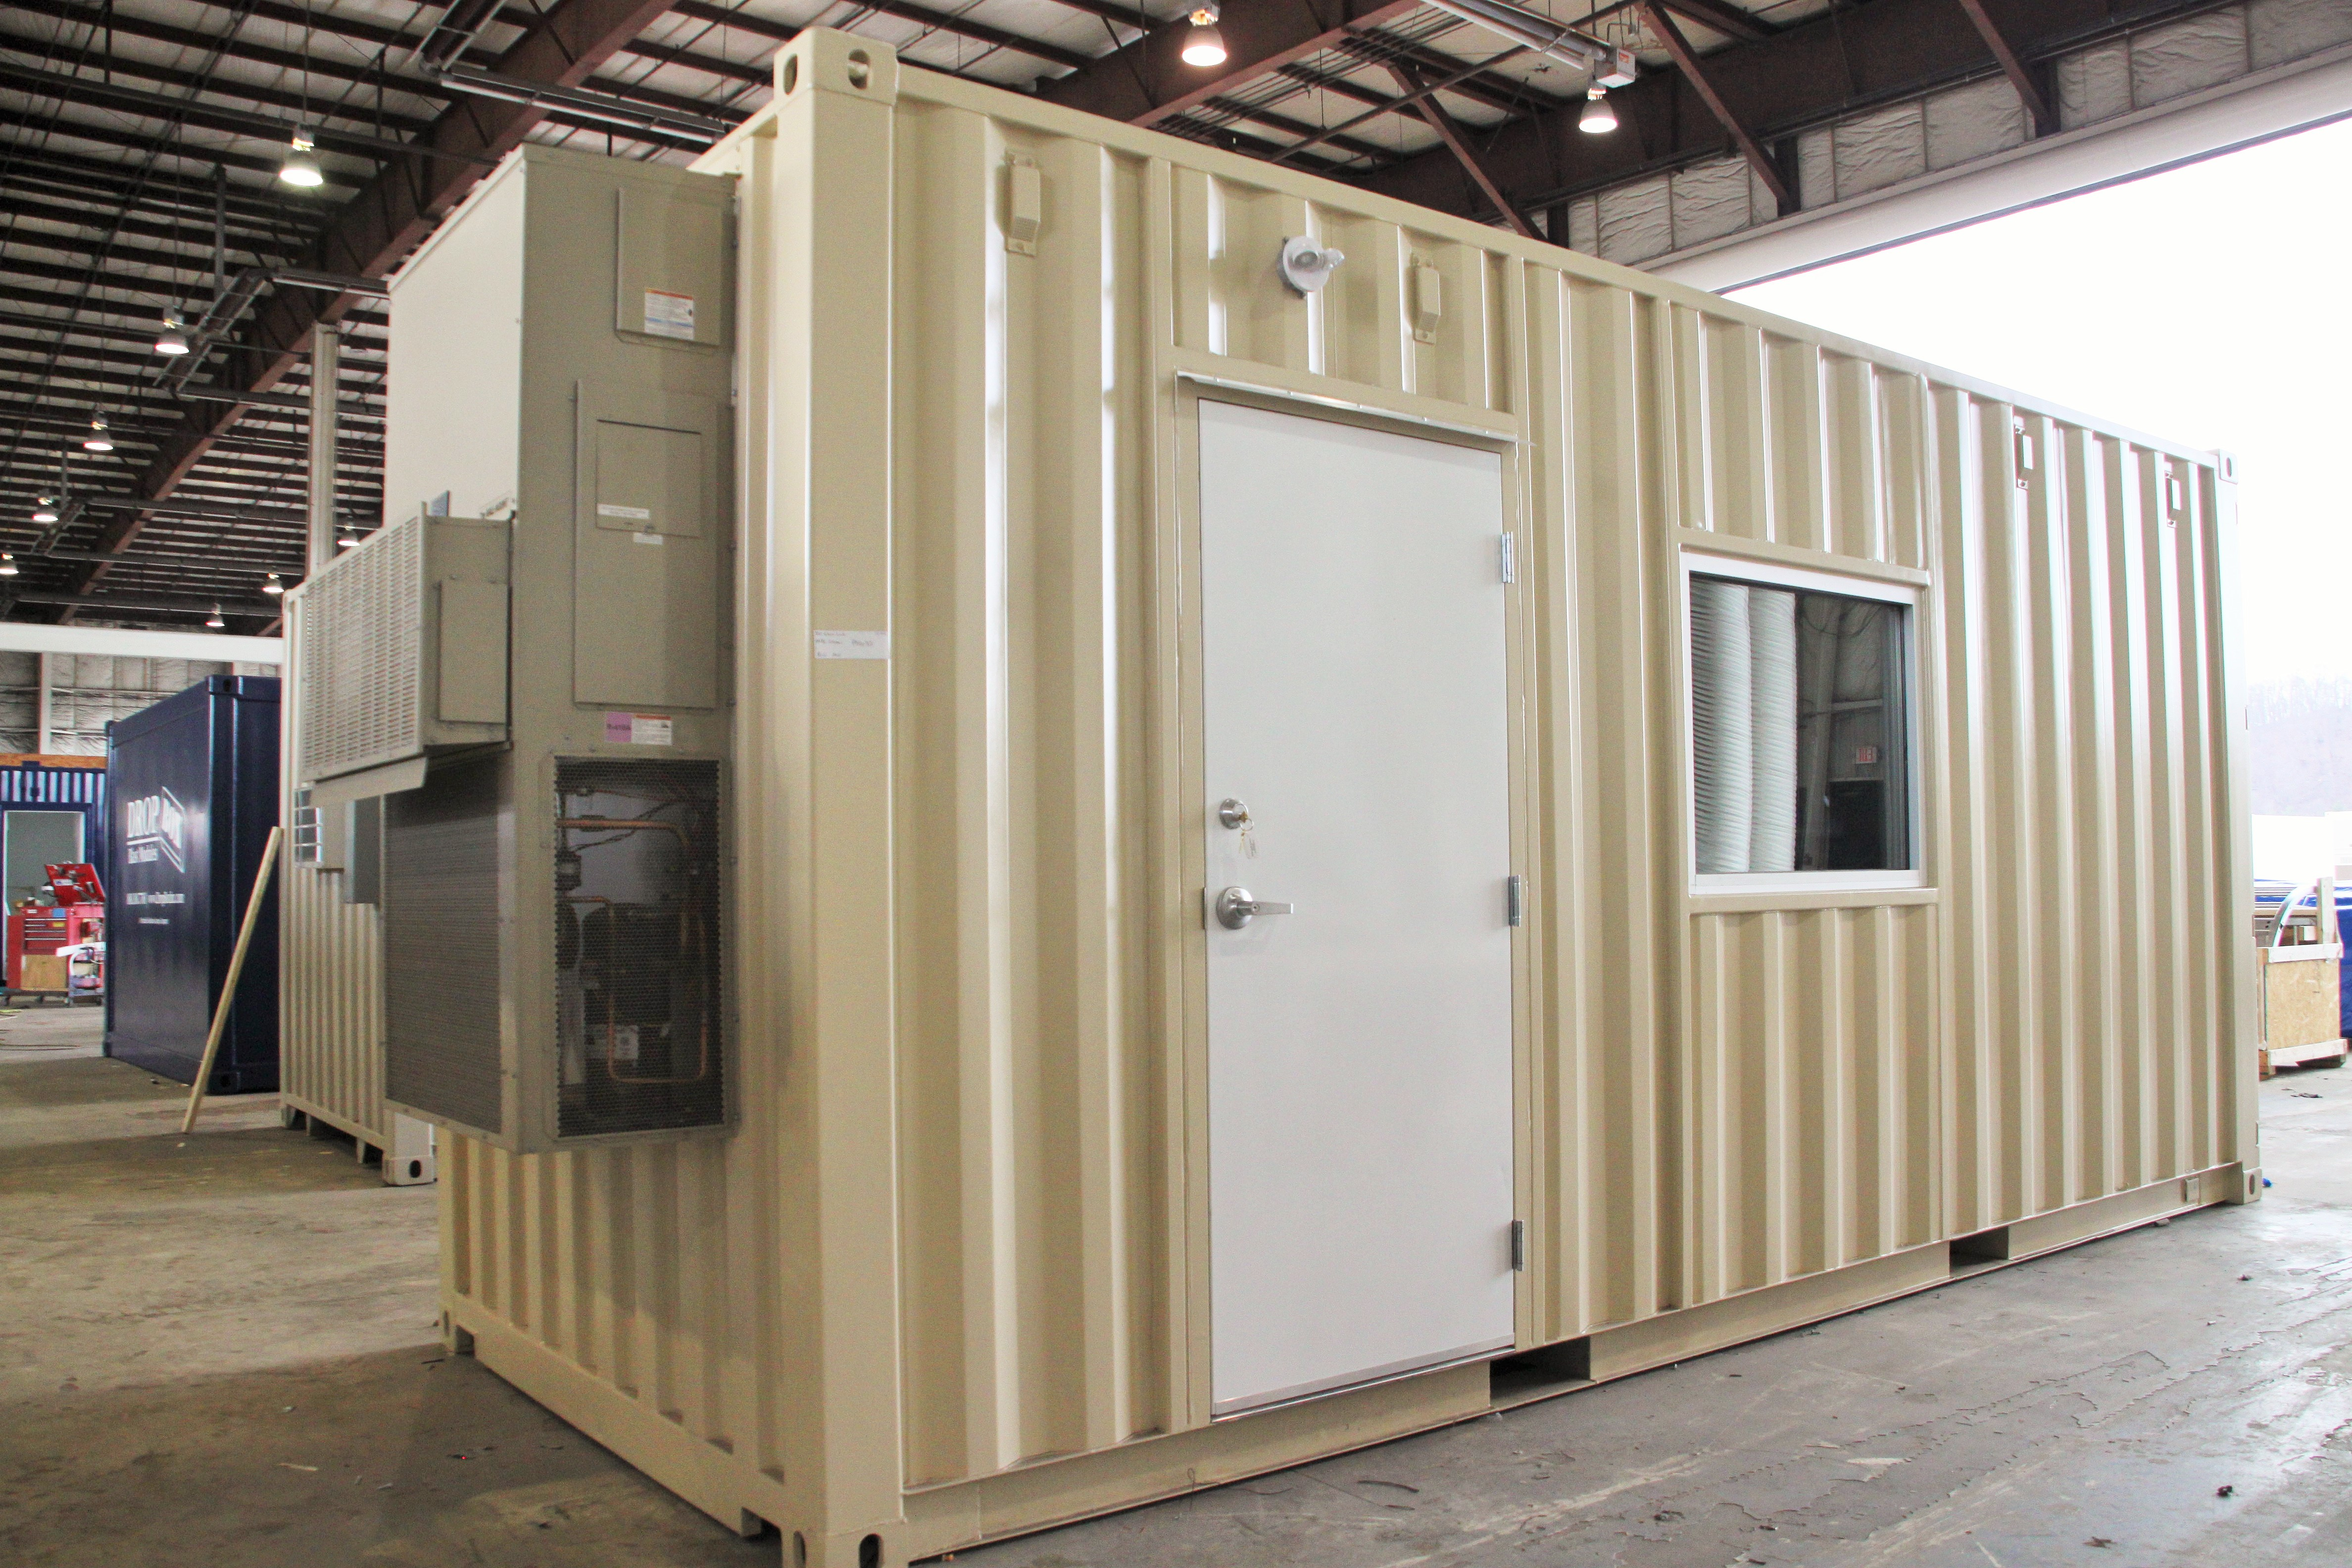 Best Kitchen Gallery: Containerized Chemical Laboratory of Lab Shipping Container on rachelxblog.com